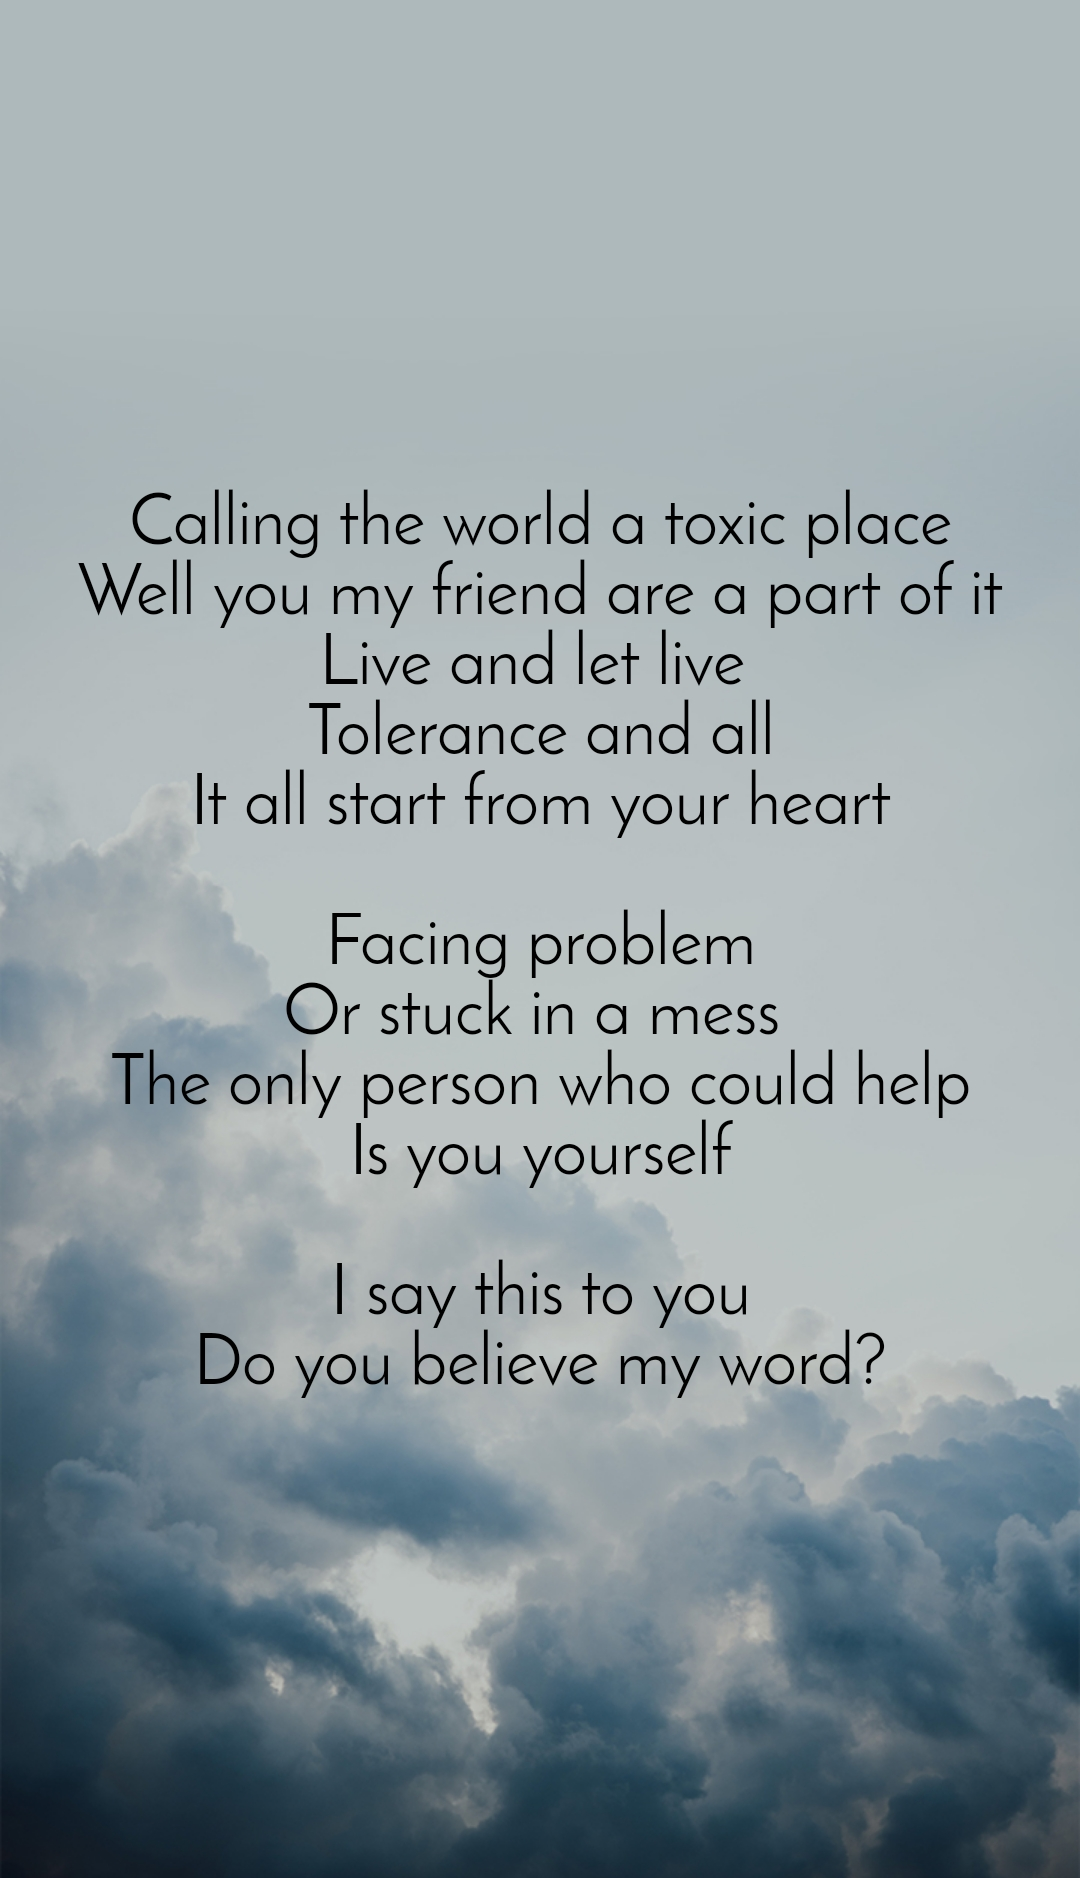 Calling the world a toxic place Well you my friend are a part of it Live and let live  Tolerance and all It all start from your heart  Facing problem Or stuck in a mess  The only person who could help Is you yourself  I say this to you Do you believe my word?